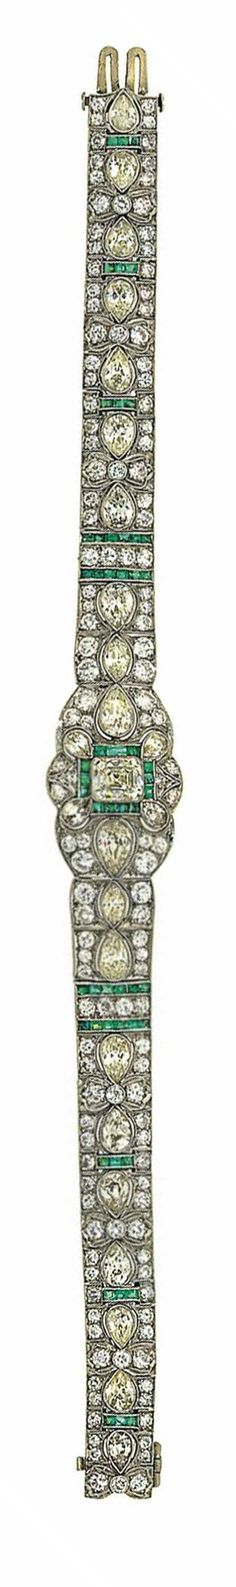 A diamond and emerald bracelet   Composed of articulated tapering panels set with pear-shaped and brilliant-cut diamonds and calibré-cut emeralds, the central section set with a rectangular cut-cornered diamond in a calibré-cut emerald, pear-shaped and brilliant-cut diamond surround, 18.0cm long